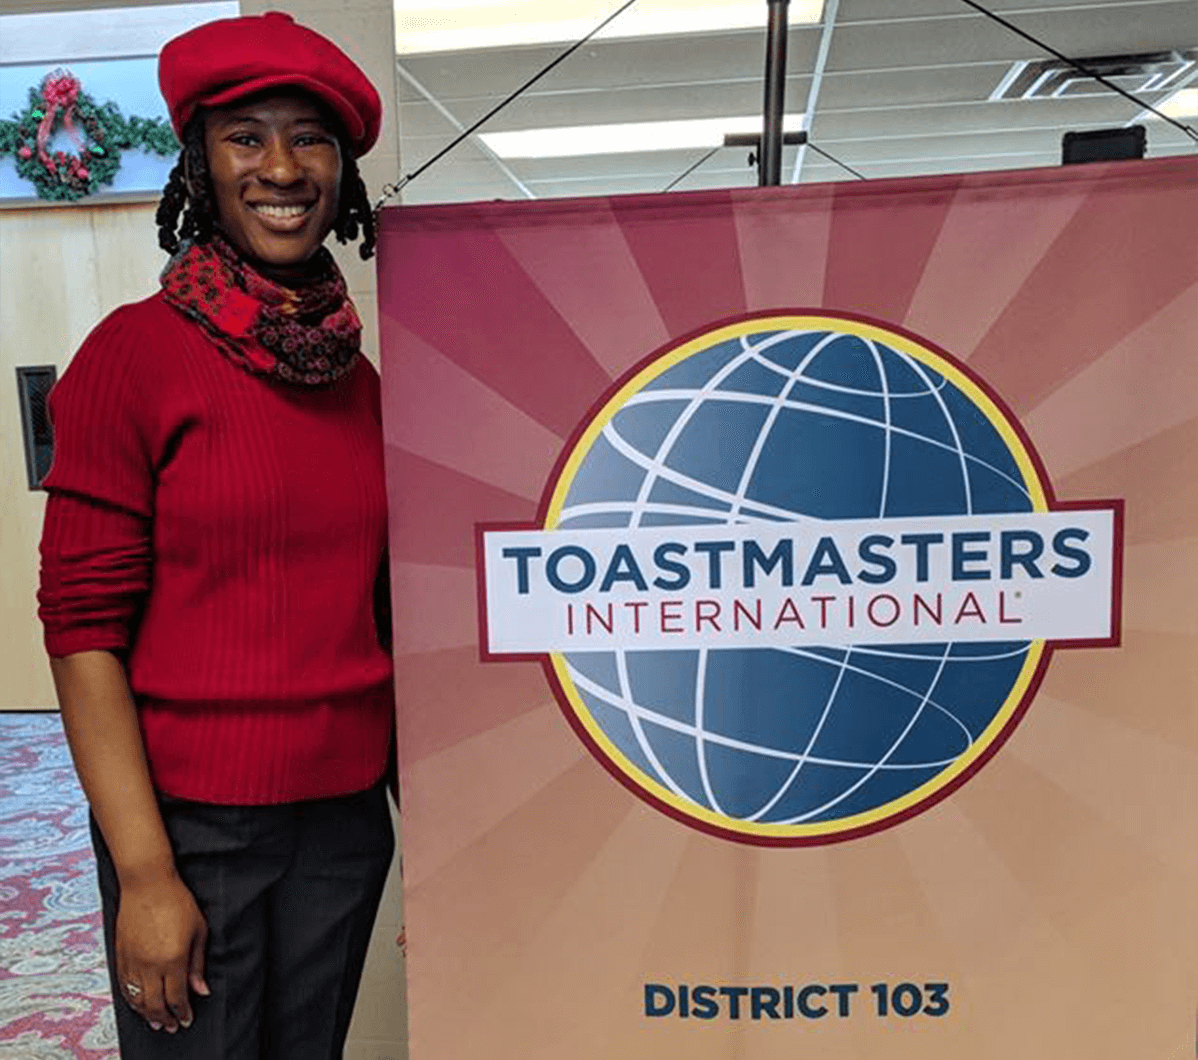 Cassandra lee in red shirt and hat standing next to Toastmasters banner